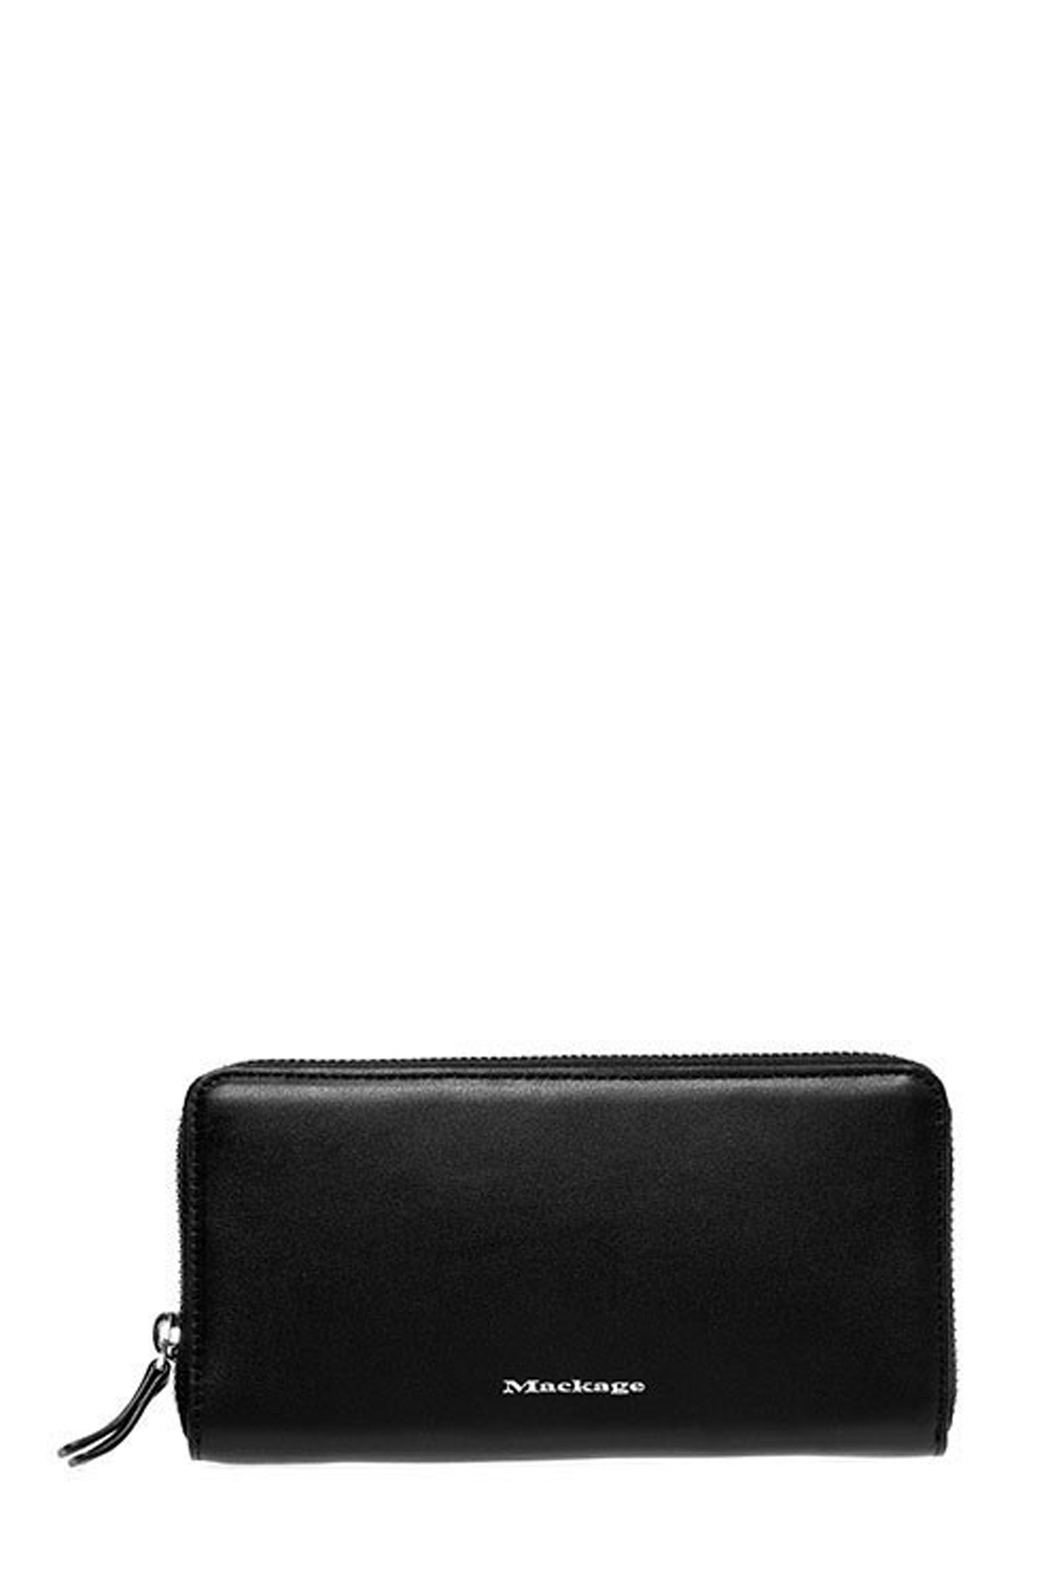 Mackage Duke Leather Zip Wallet - Main Image